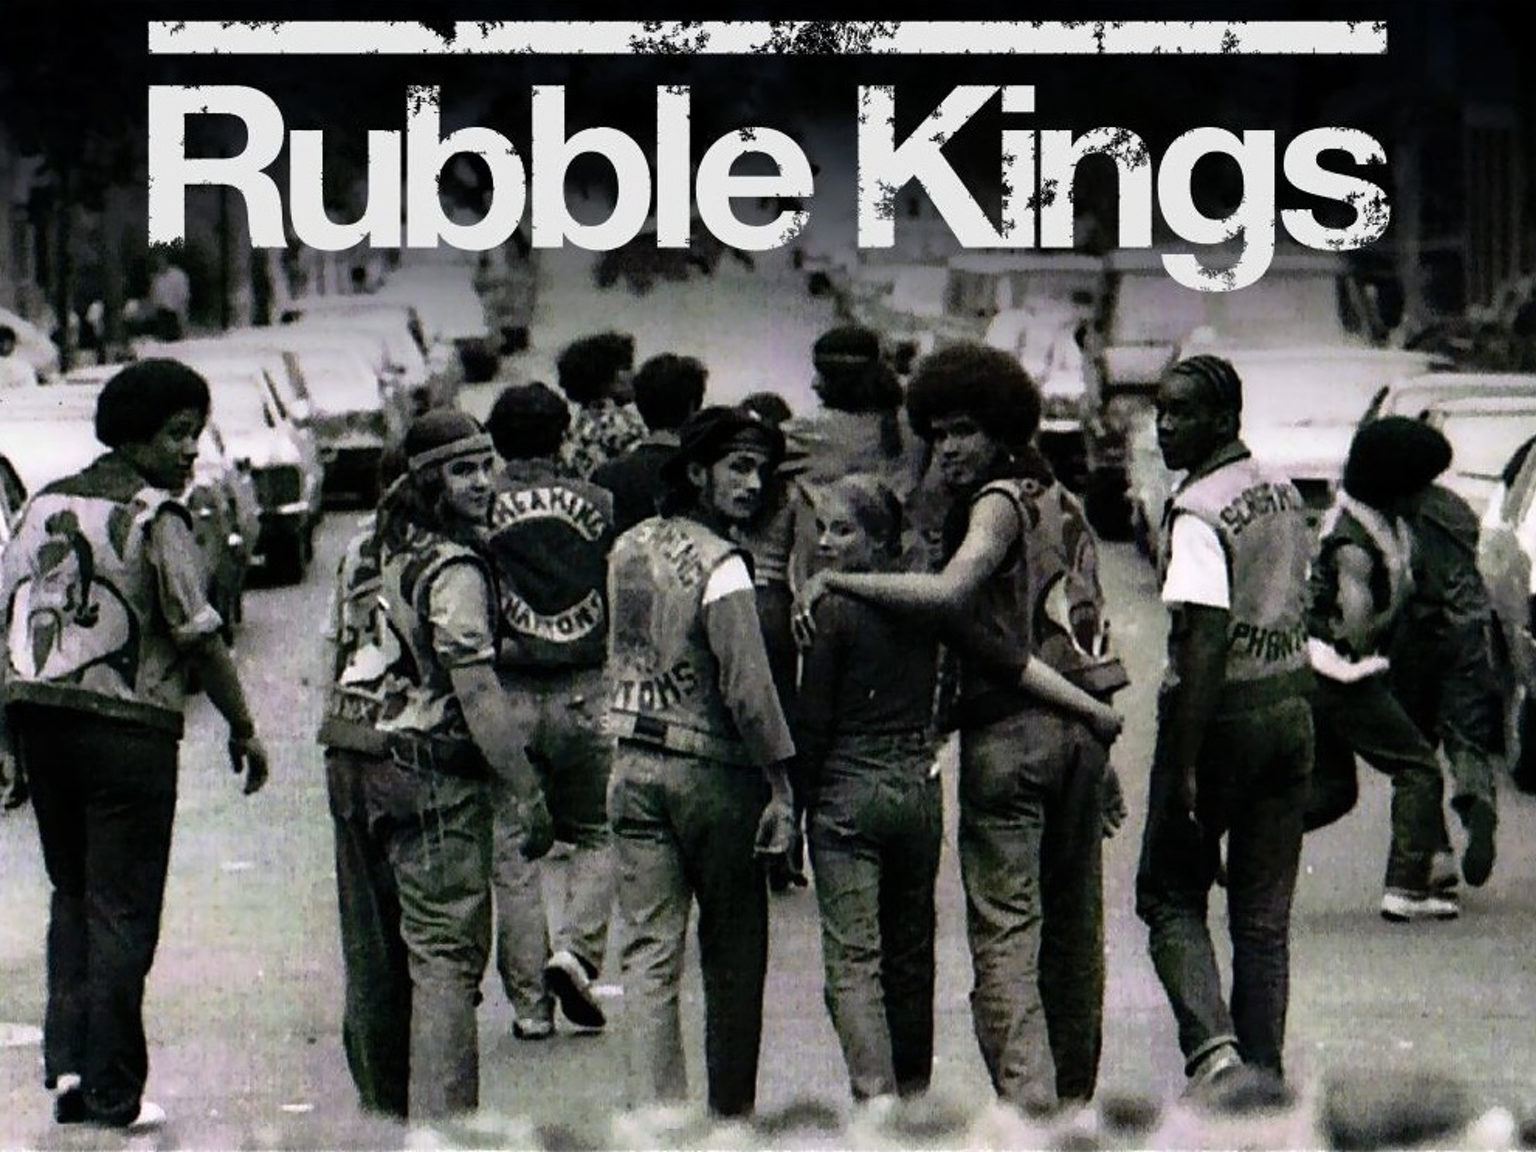 Rubble kings documentary bad magics magic men rubble kings is a powerful documentary covering the history of gangs in new york from the late 60s through the 70s and how the gang treaty gave way publicscrutiny Choice Image